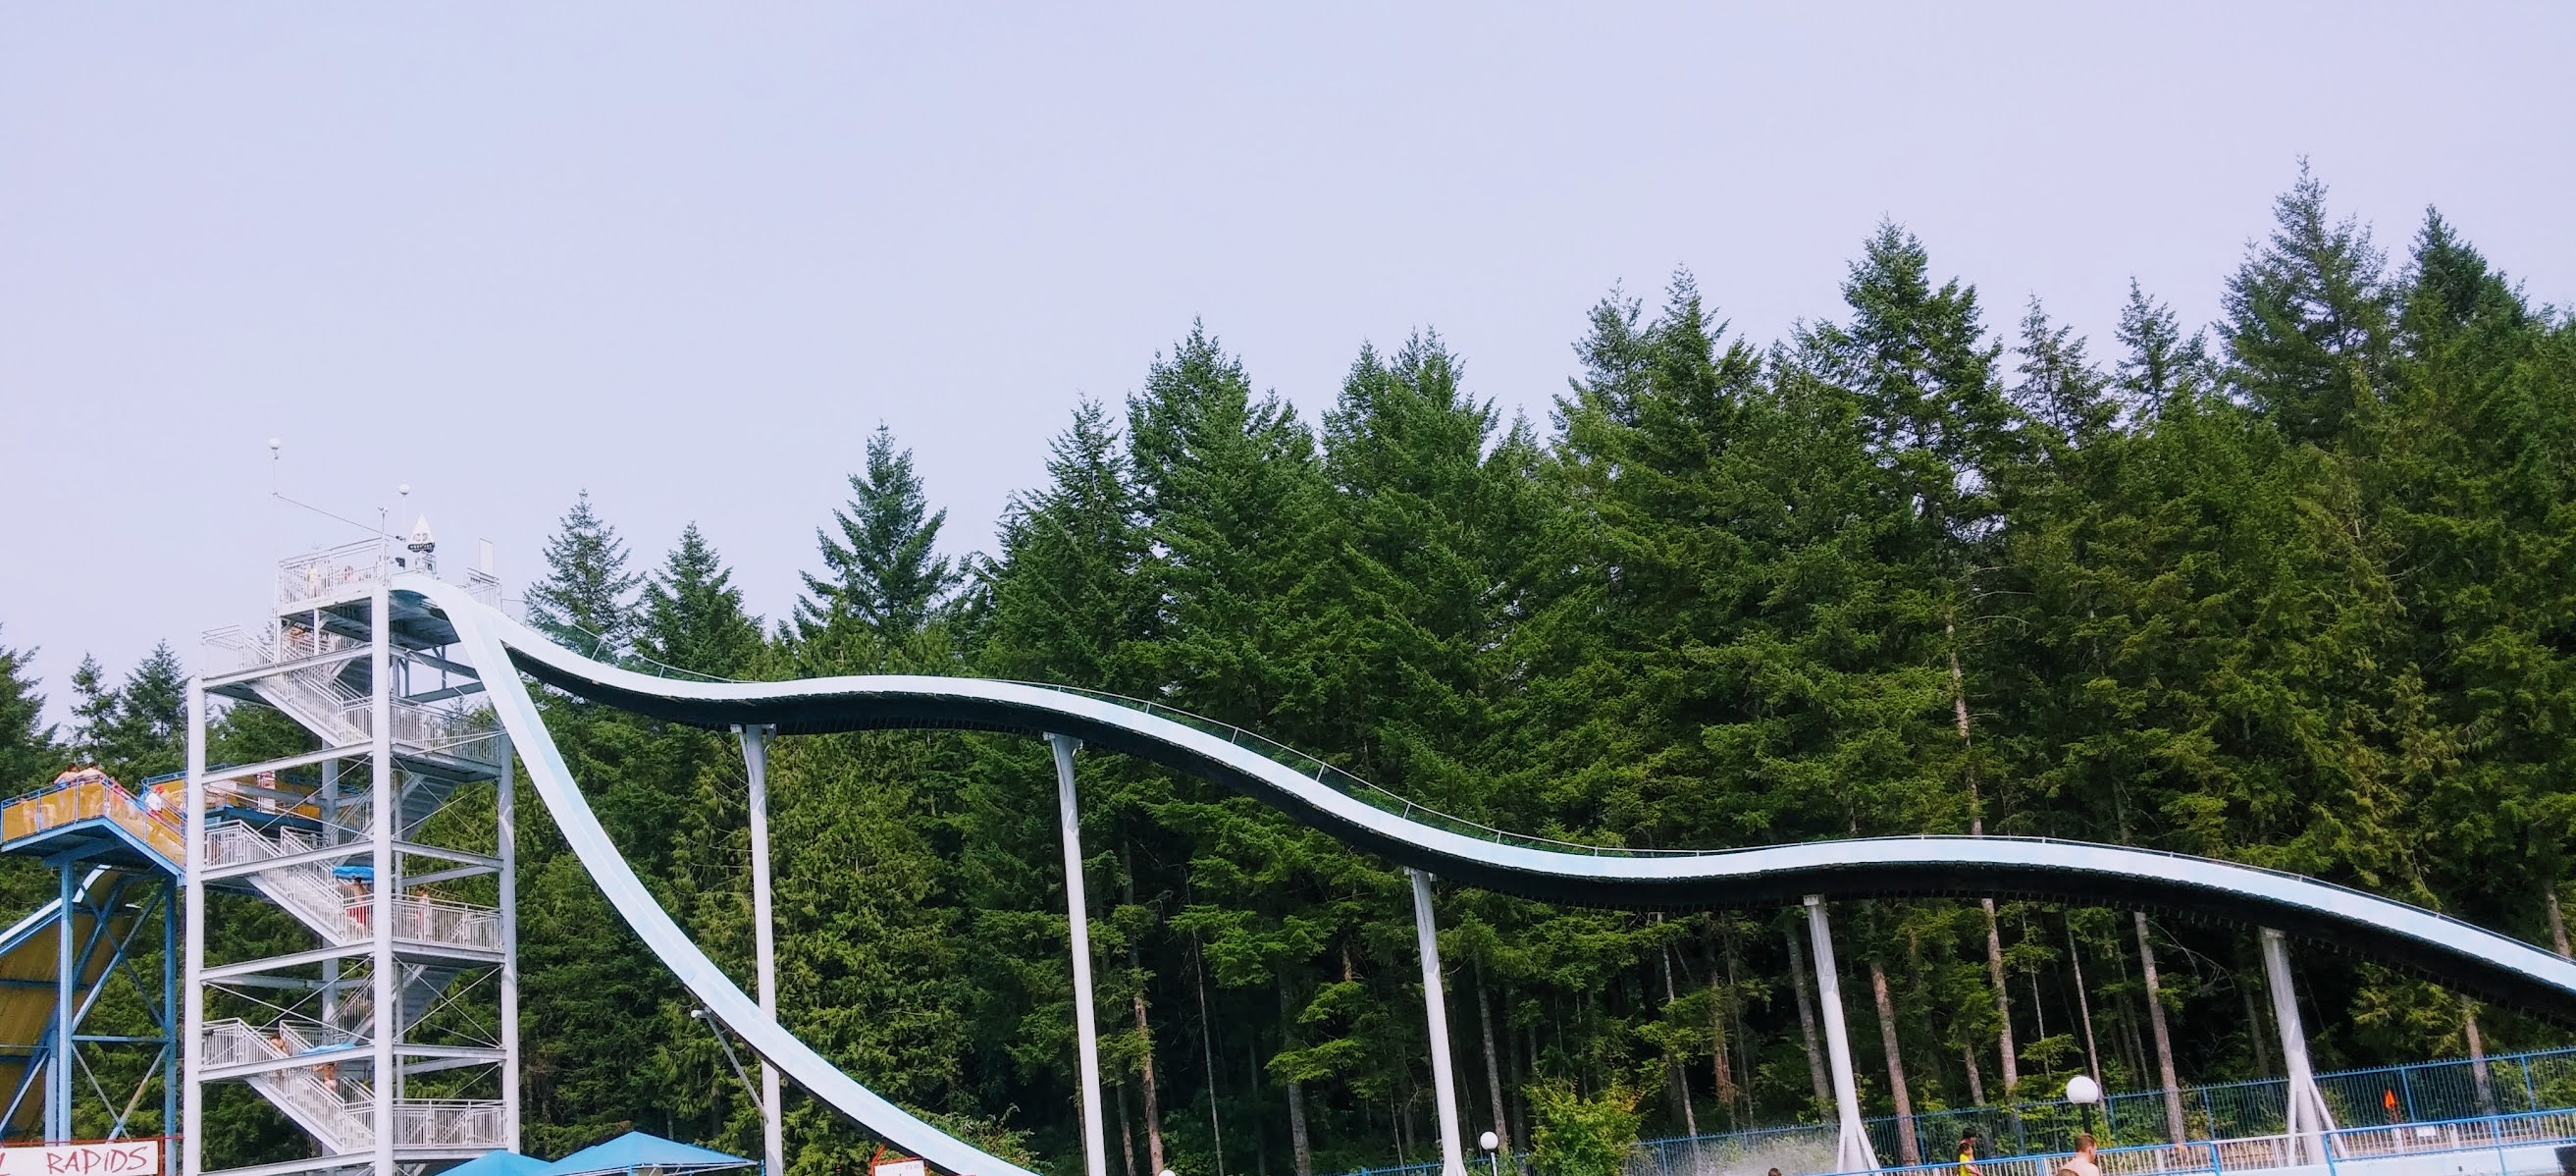 The Skinniest Slide In Cultus Lake Water Park.